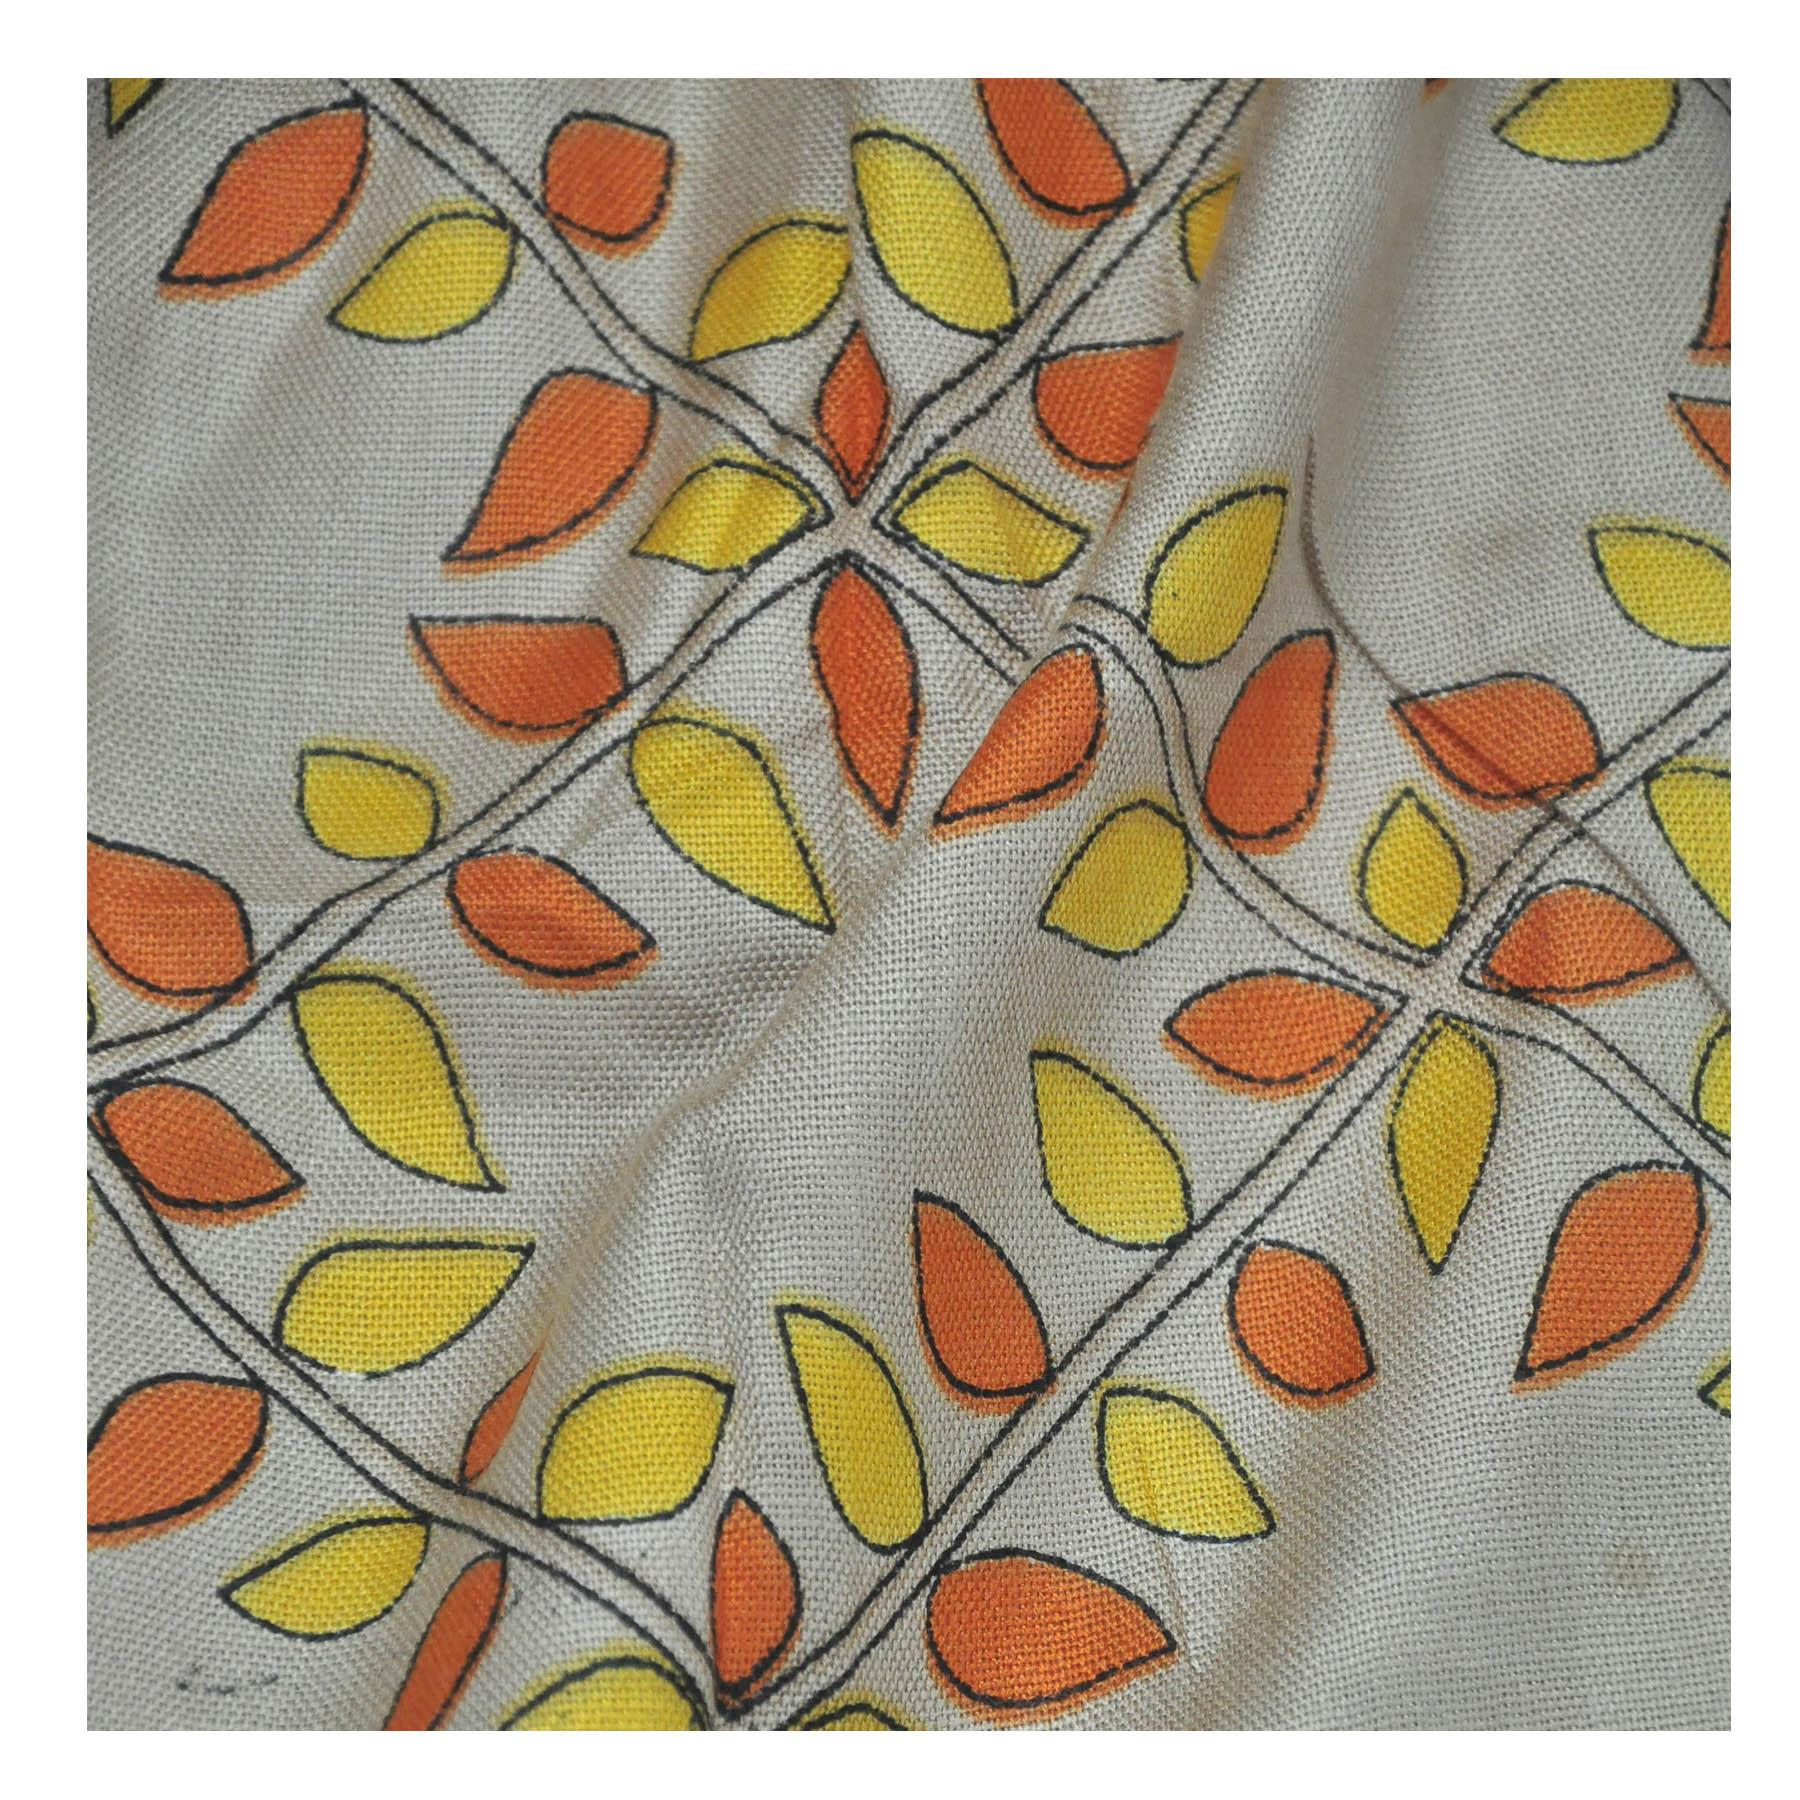 New-Ladies-Multicoloured-Leaves-Winter-Fashion-Large-Soft-Cosy-Neck-Scarf-Shawl thumbnail 3